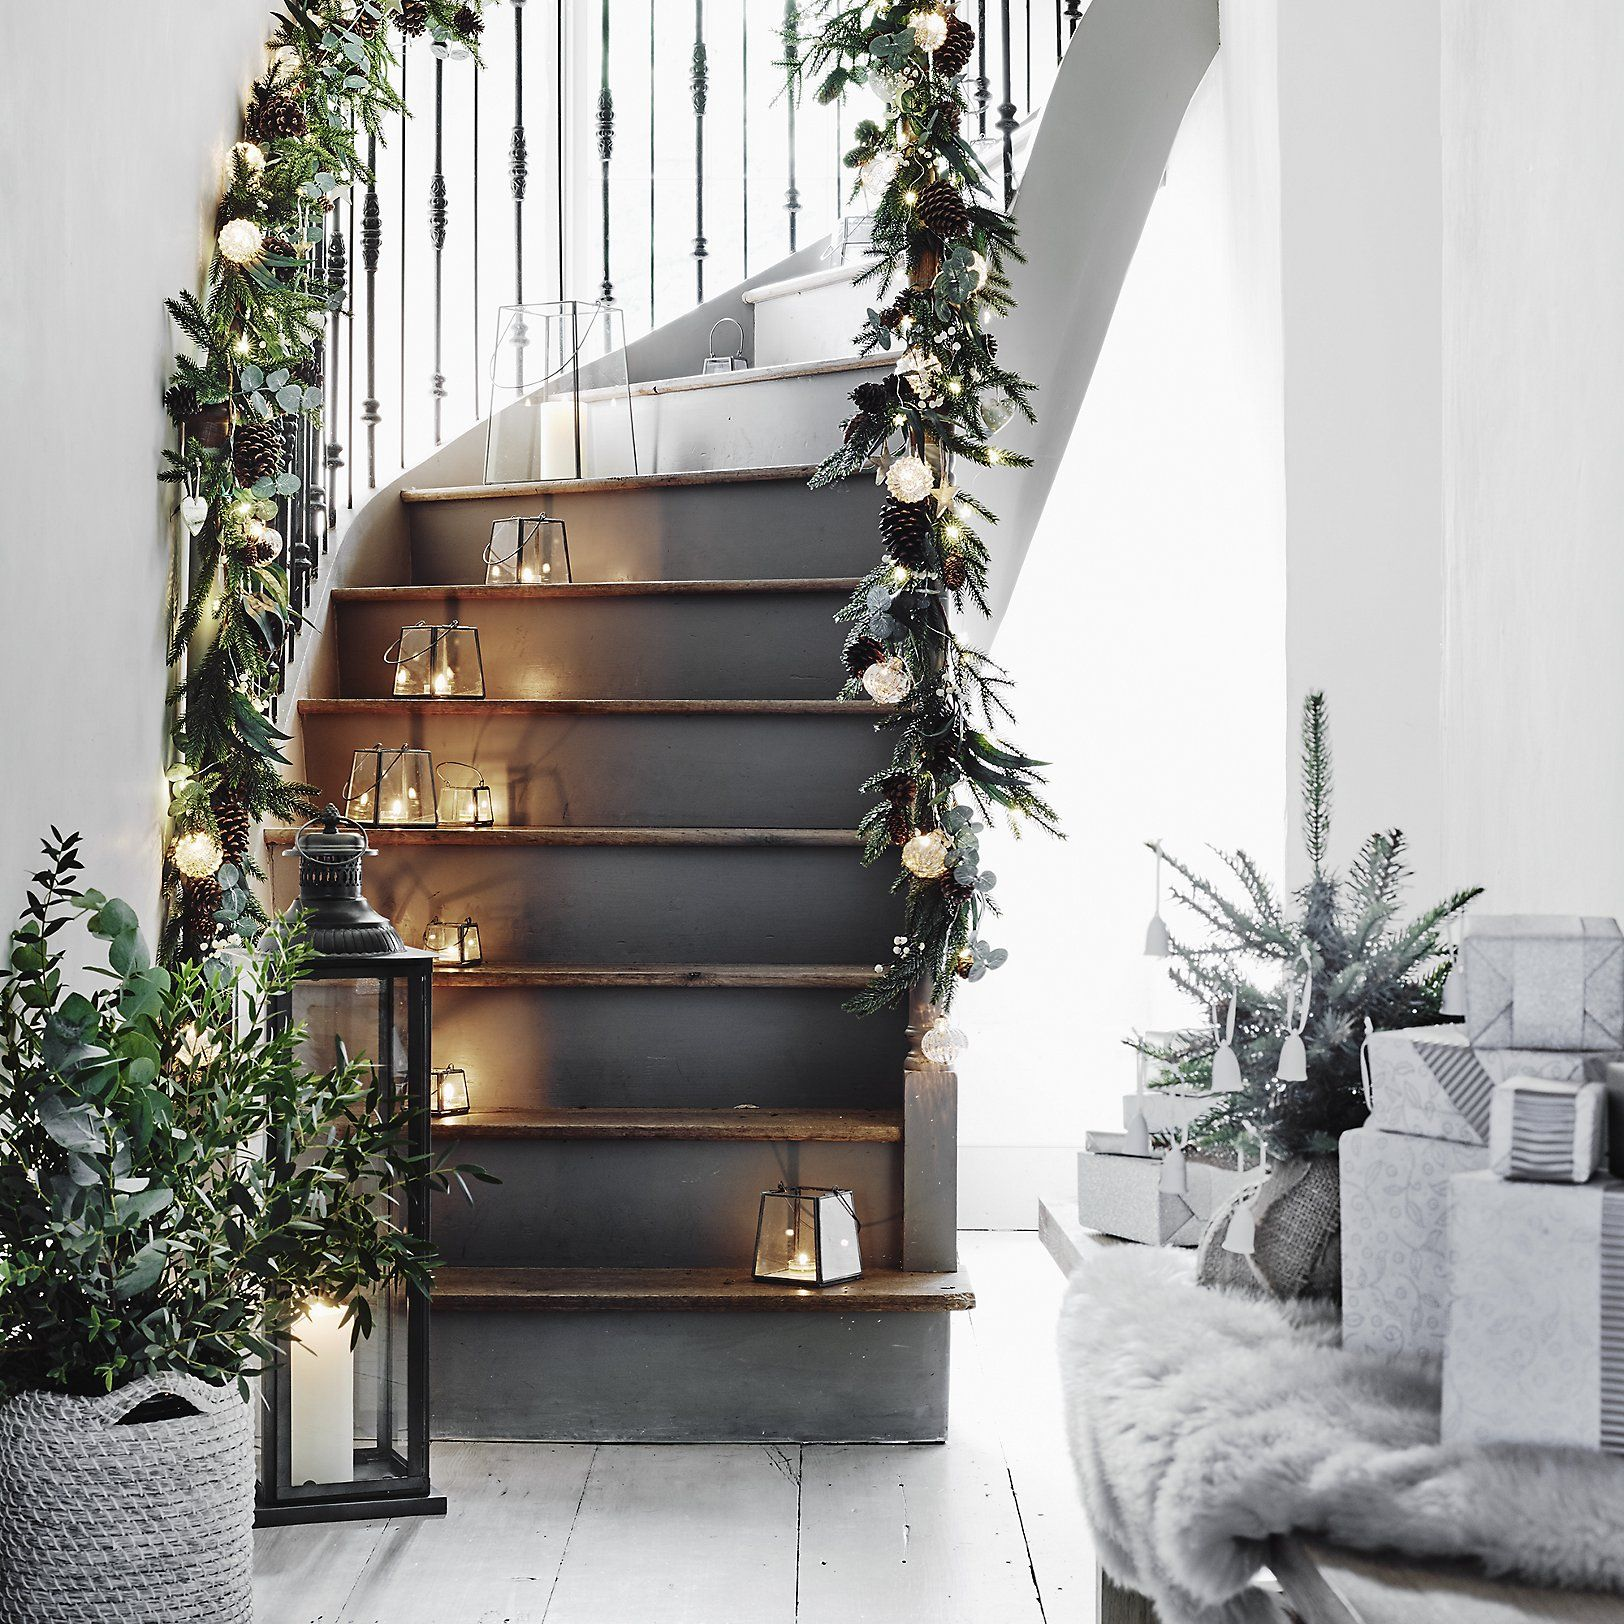 40 Brilliant Under The Stairs Employment Ideas: Create A Classy Holiday Staircase Using Small Nordic